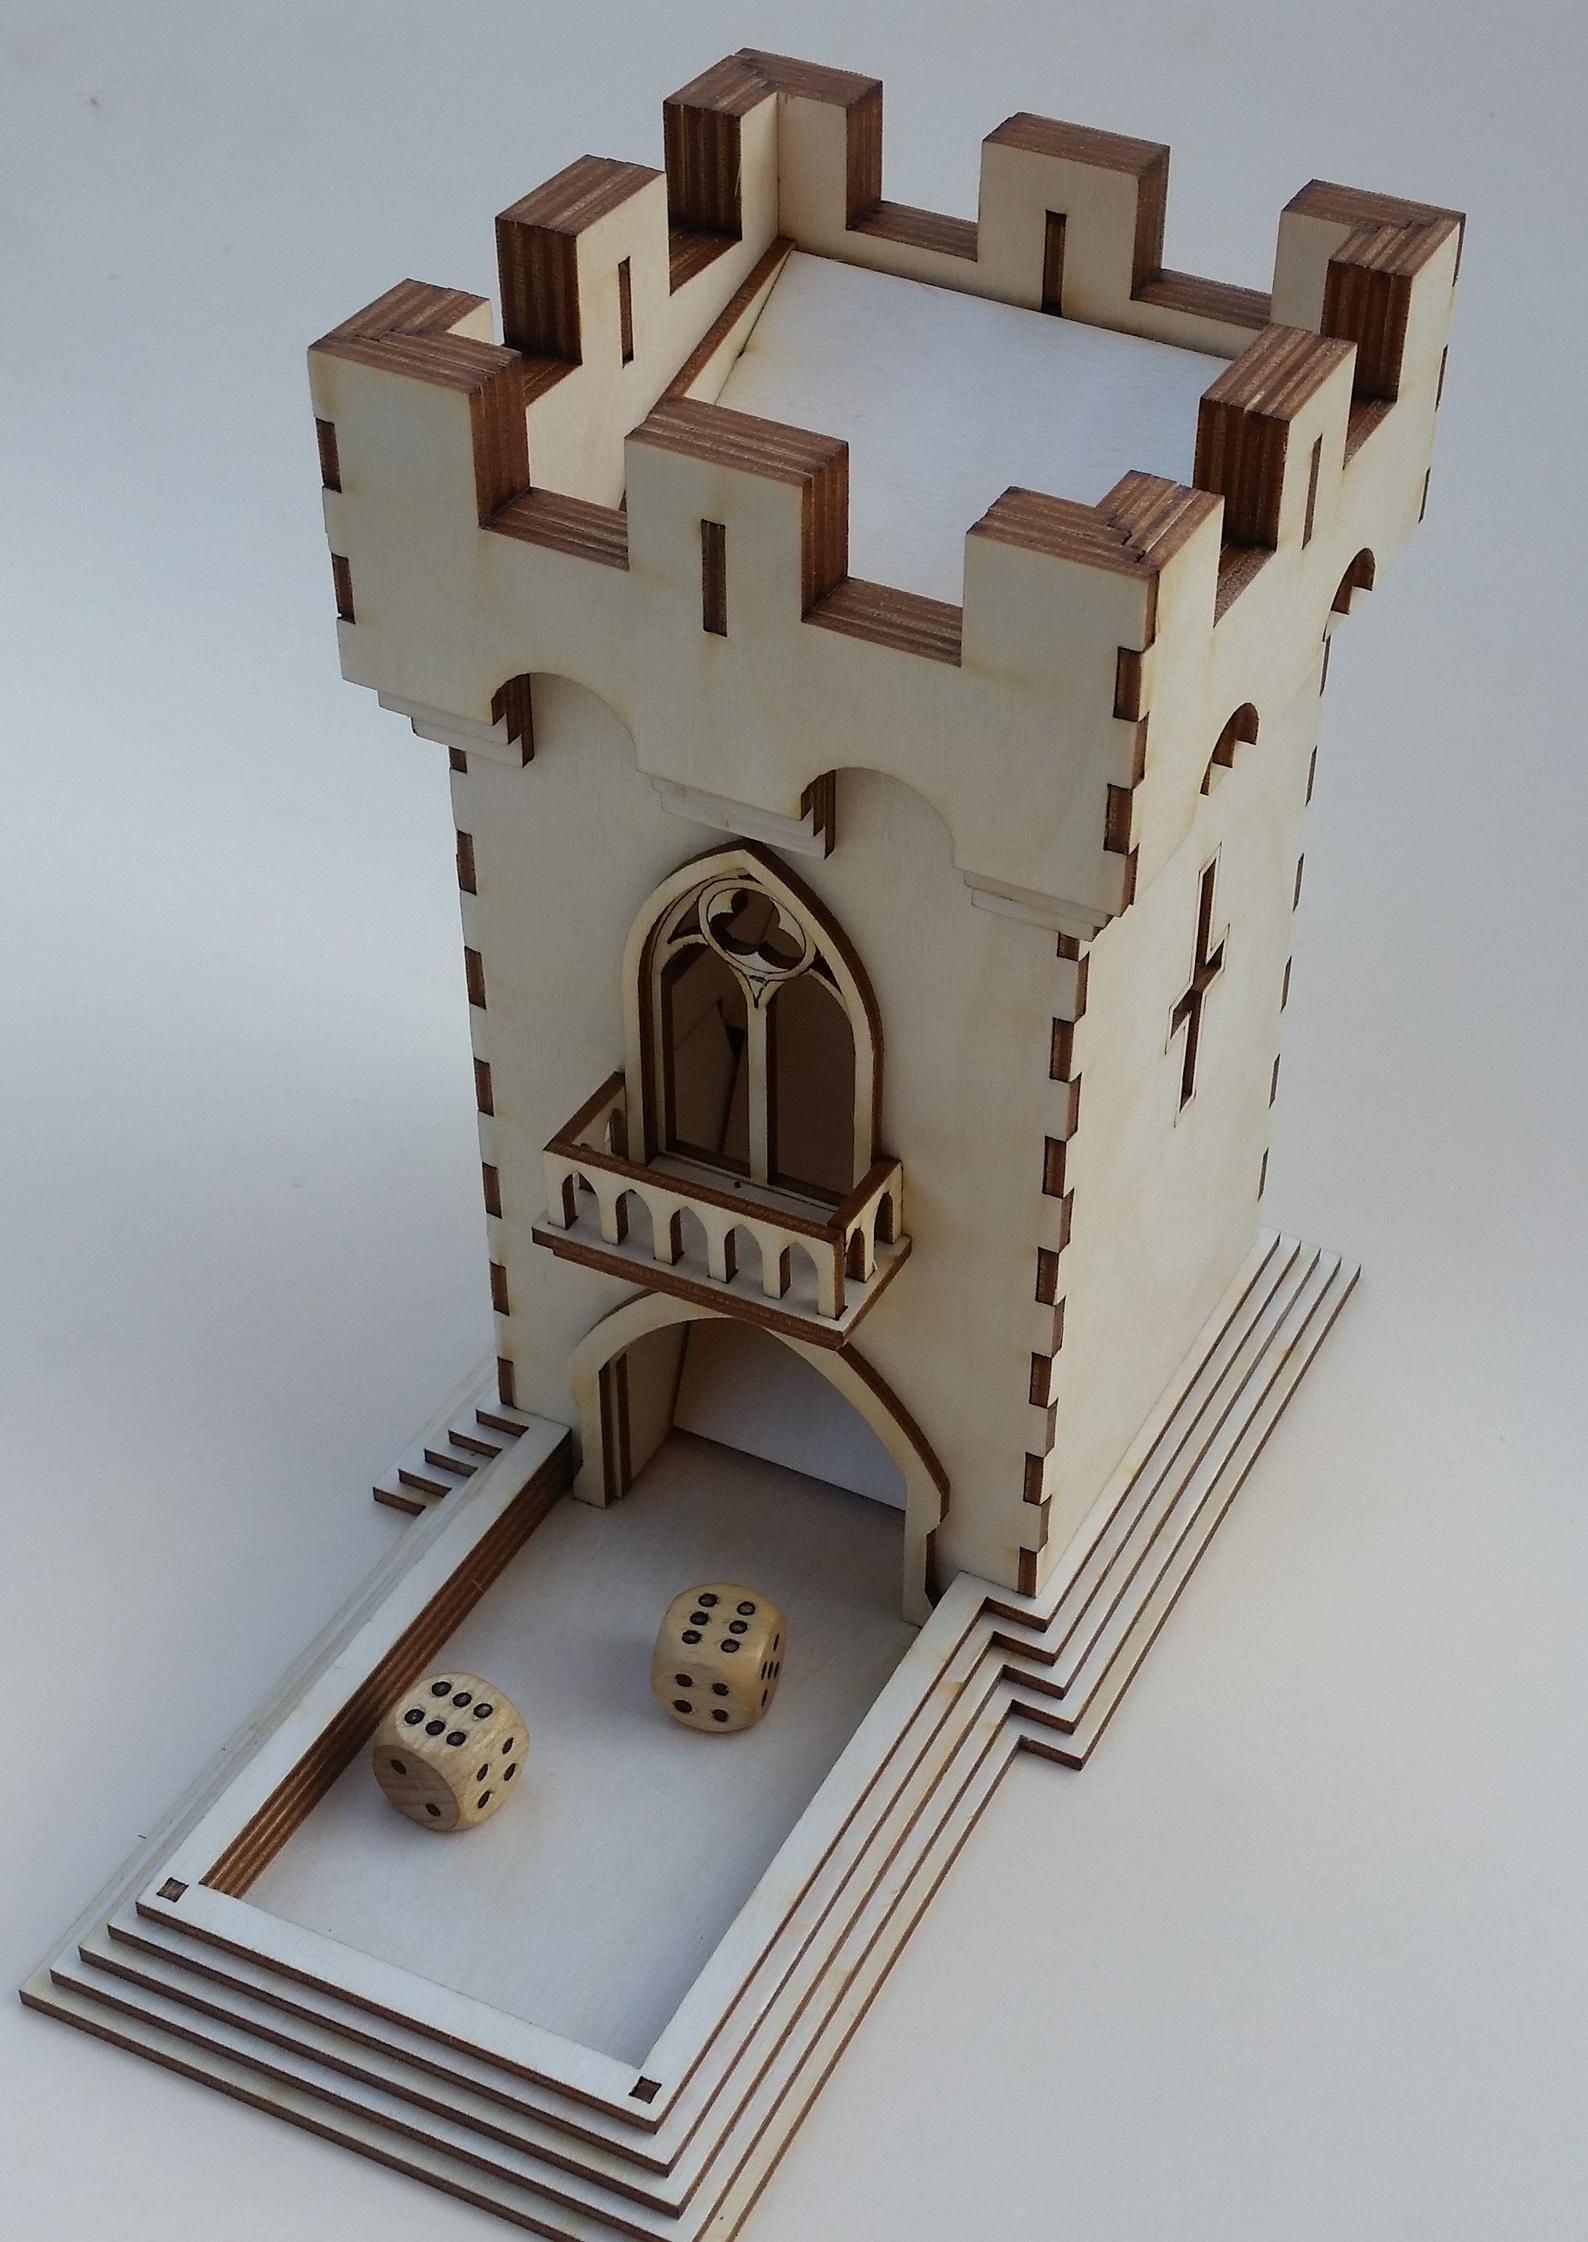 Dice tower old tower style castle Etsy Dice tower